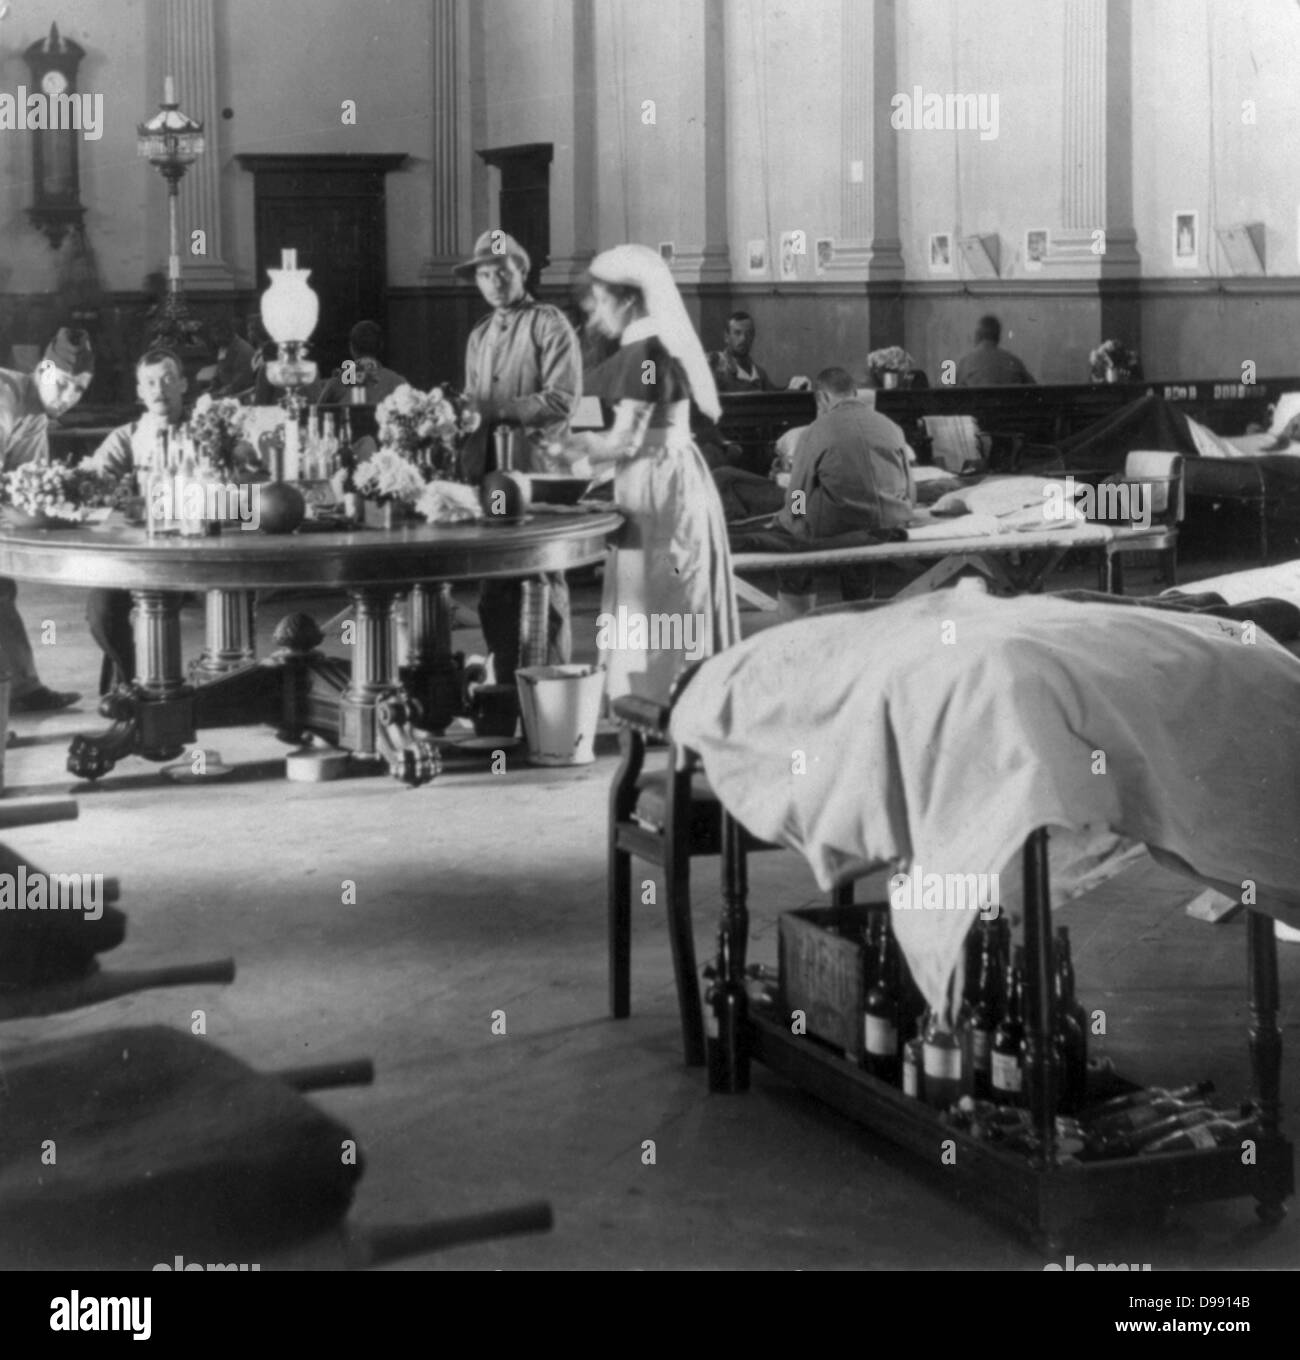 Second Boer War 1899-1902: 'Where the sick and wounded British soldiers are cared for' - interior of the - Stock Image